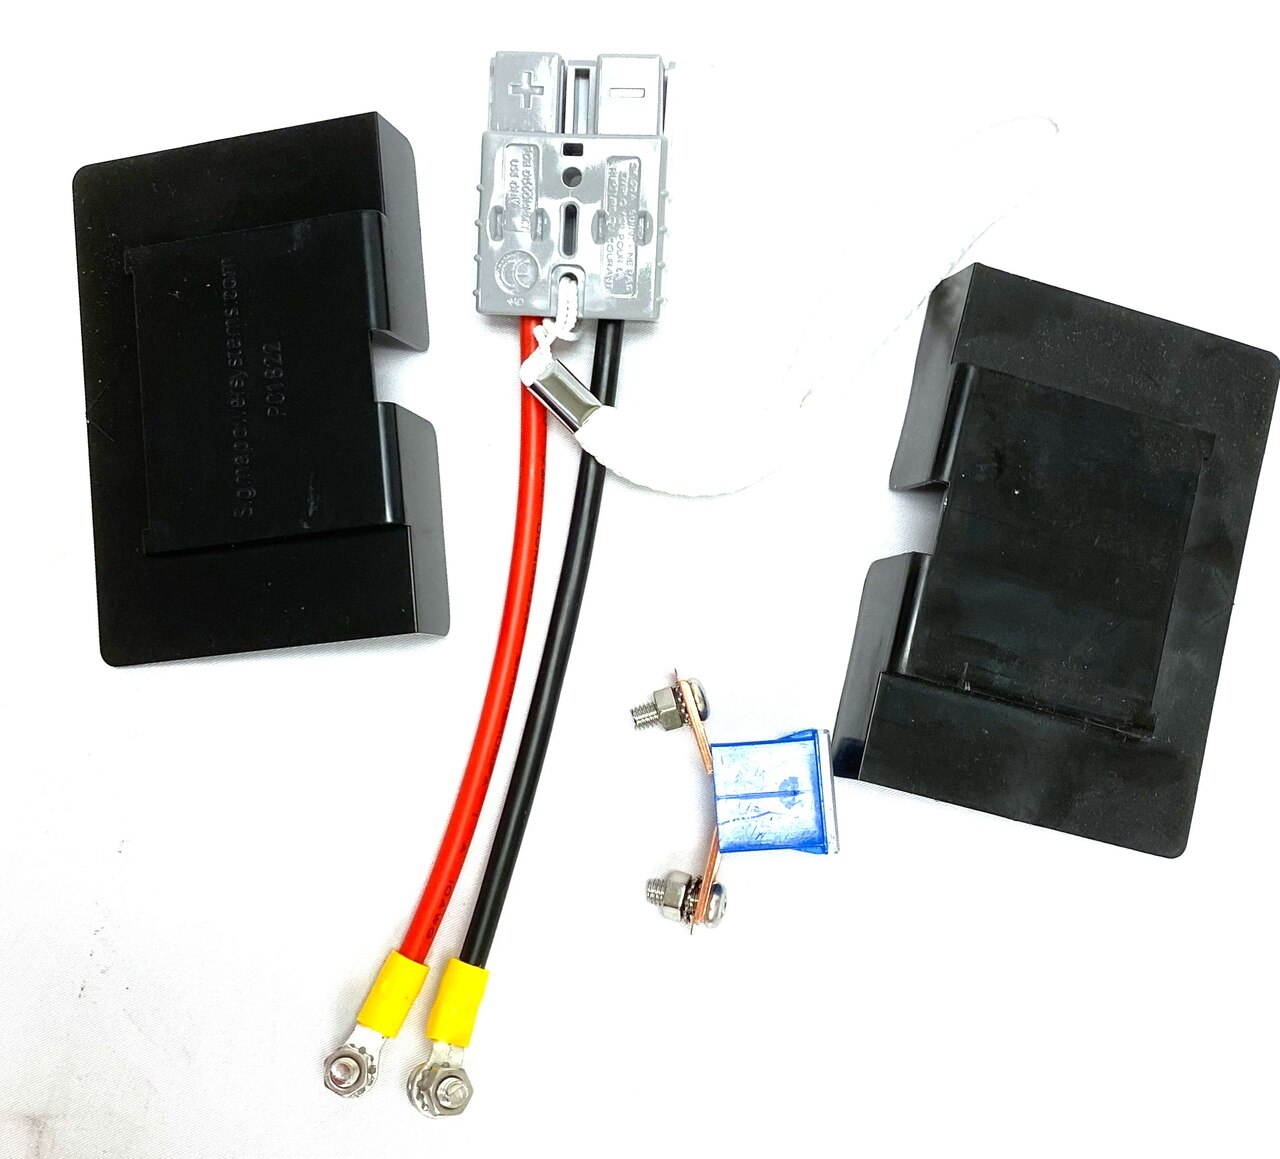 SPS Brand Complete Wire Harness with Terminal Covers and Fuse for APC SU2200NET RBC11 Battery Cartridge 20 Pack